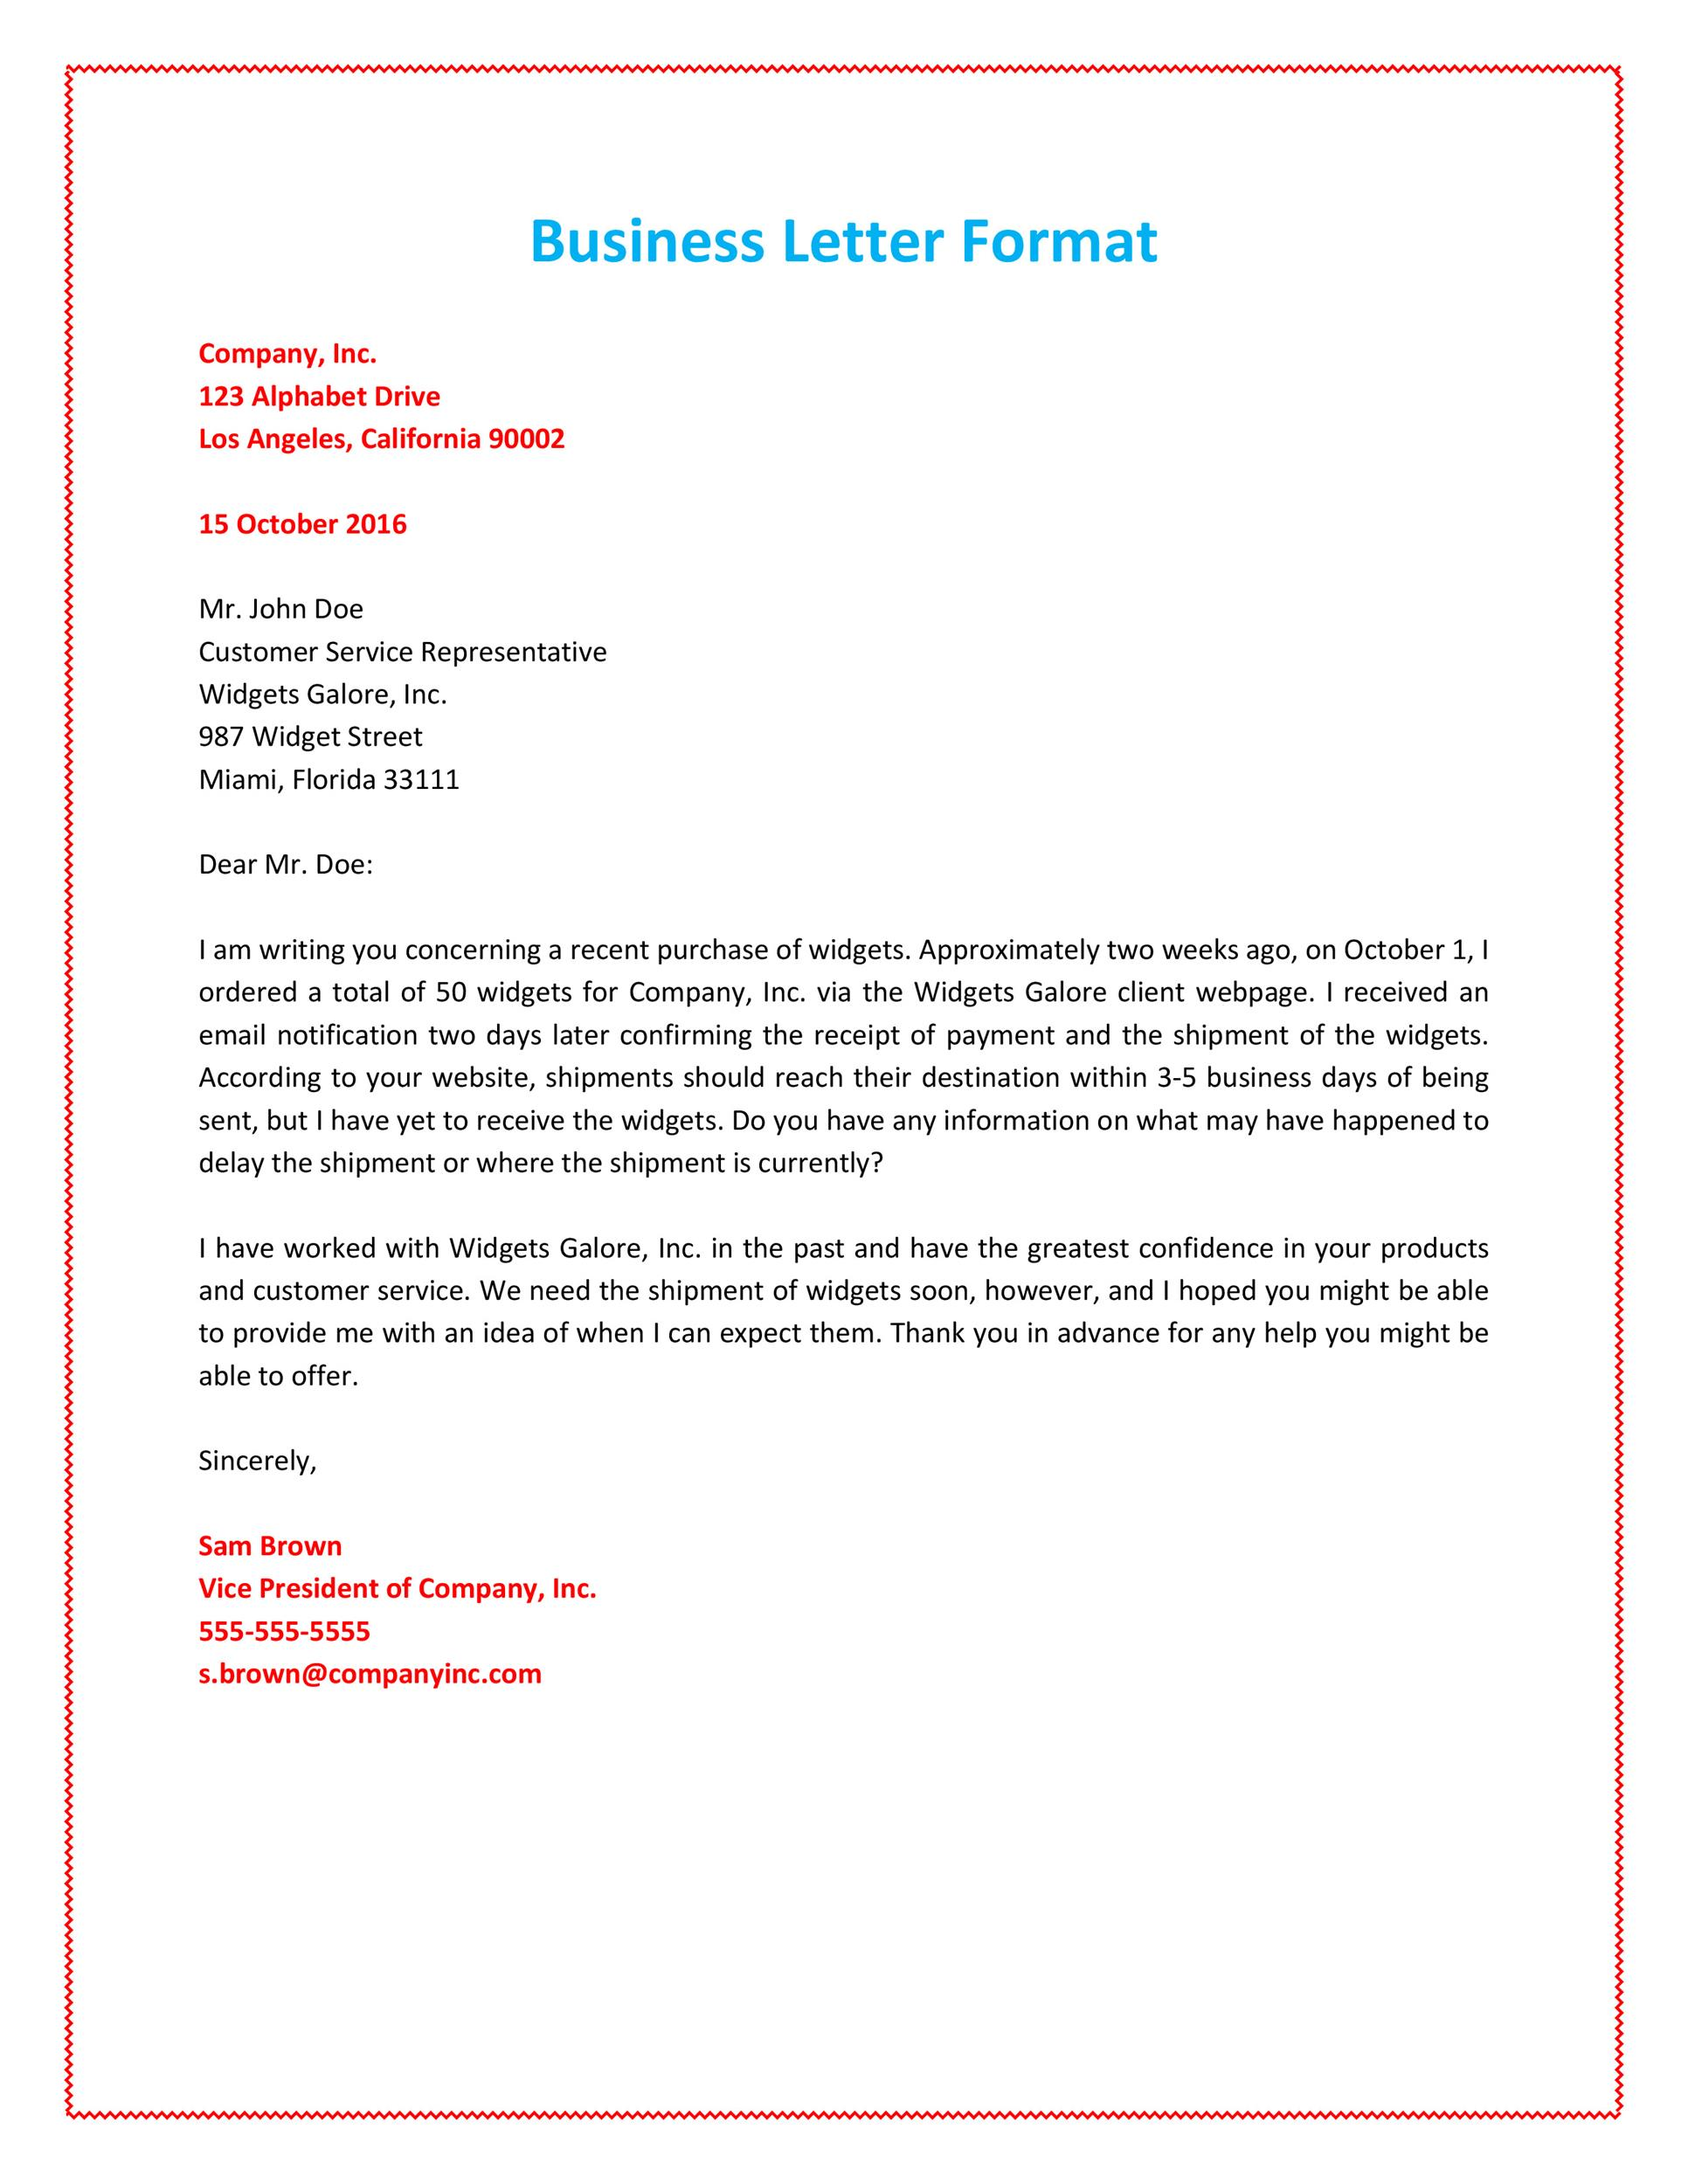 35 formal business letter format templates examples template lab business letter format example friedricerecipe Image collections